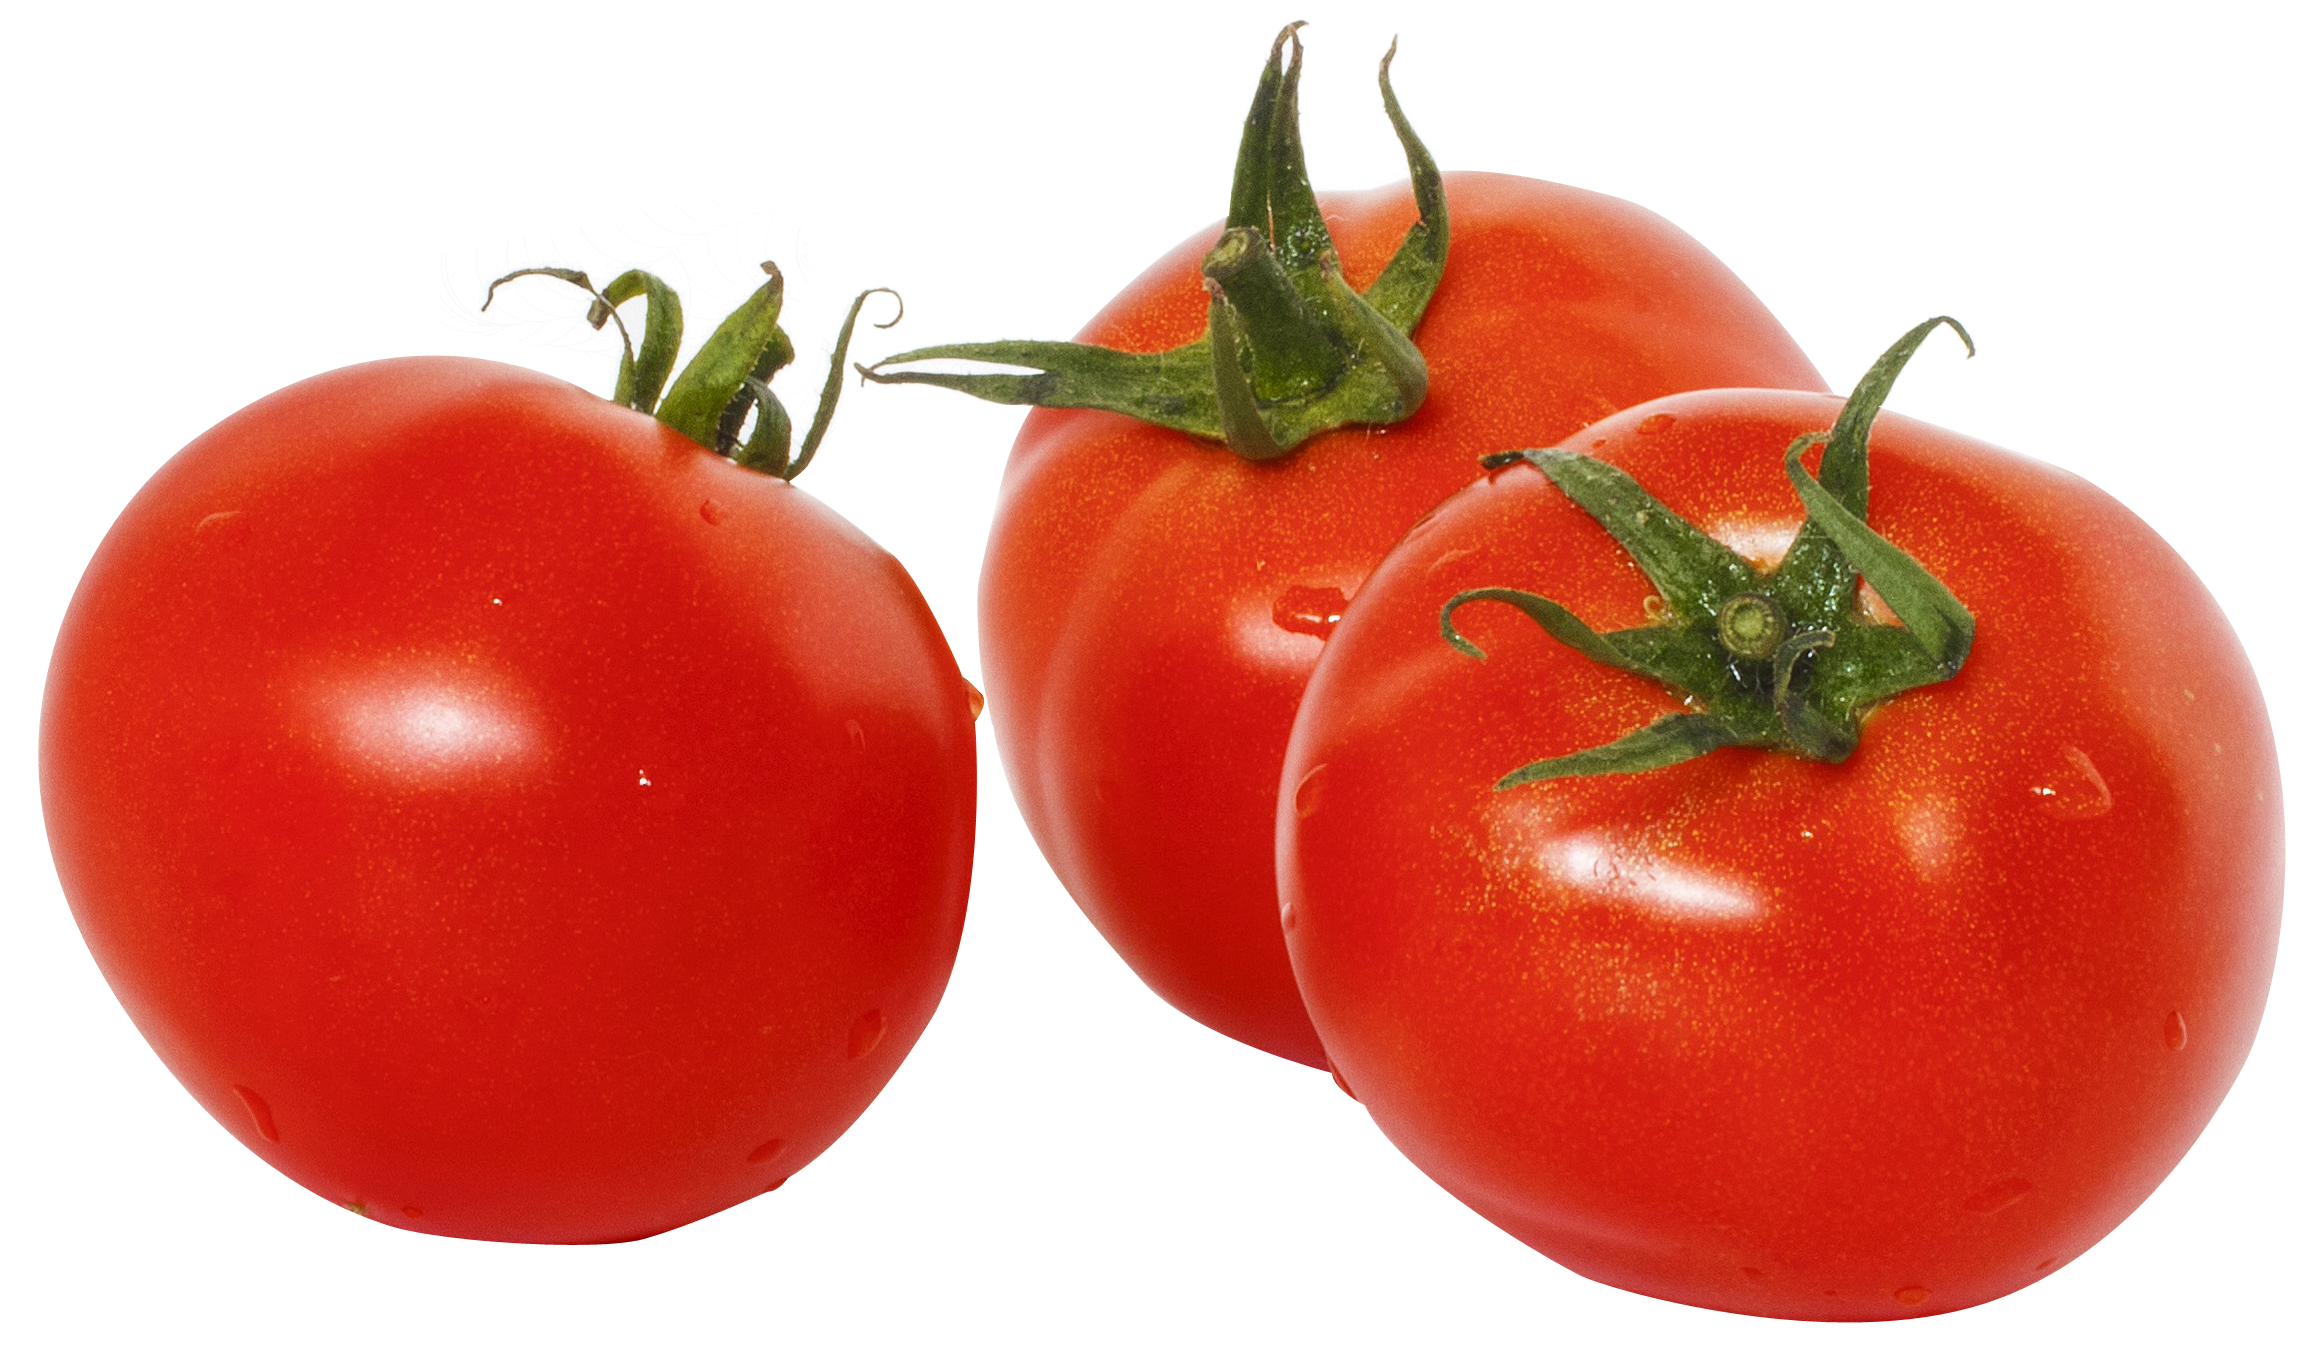 PNG Tomato-PlusPNG pluspng.com-2319 - PNG Tomato - Tomato PNG HD